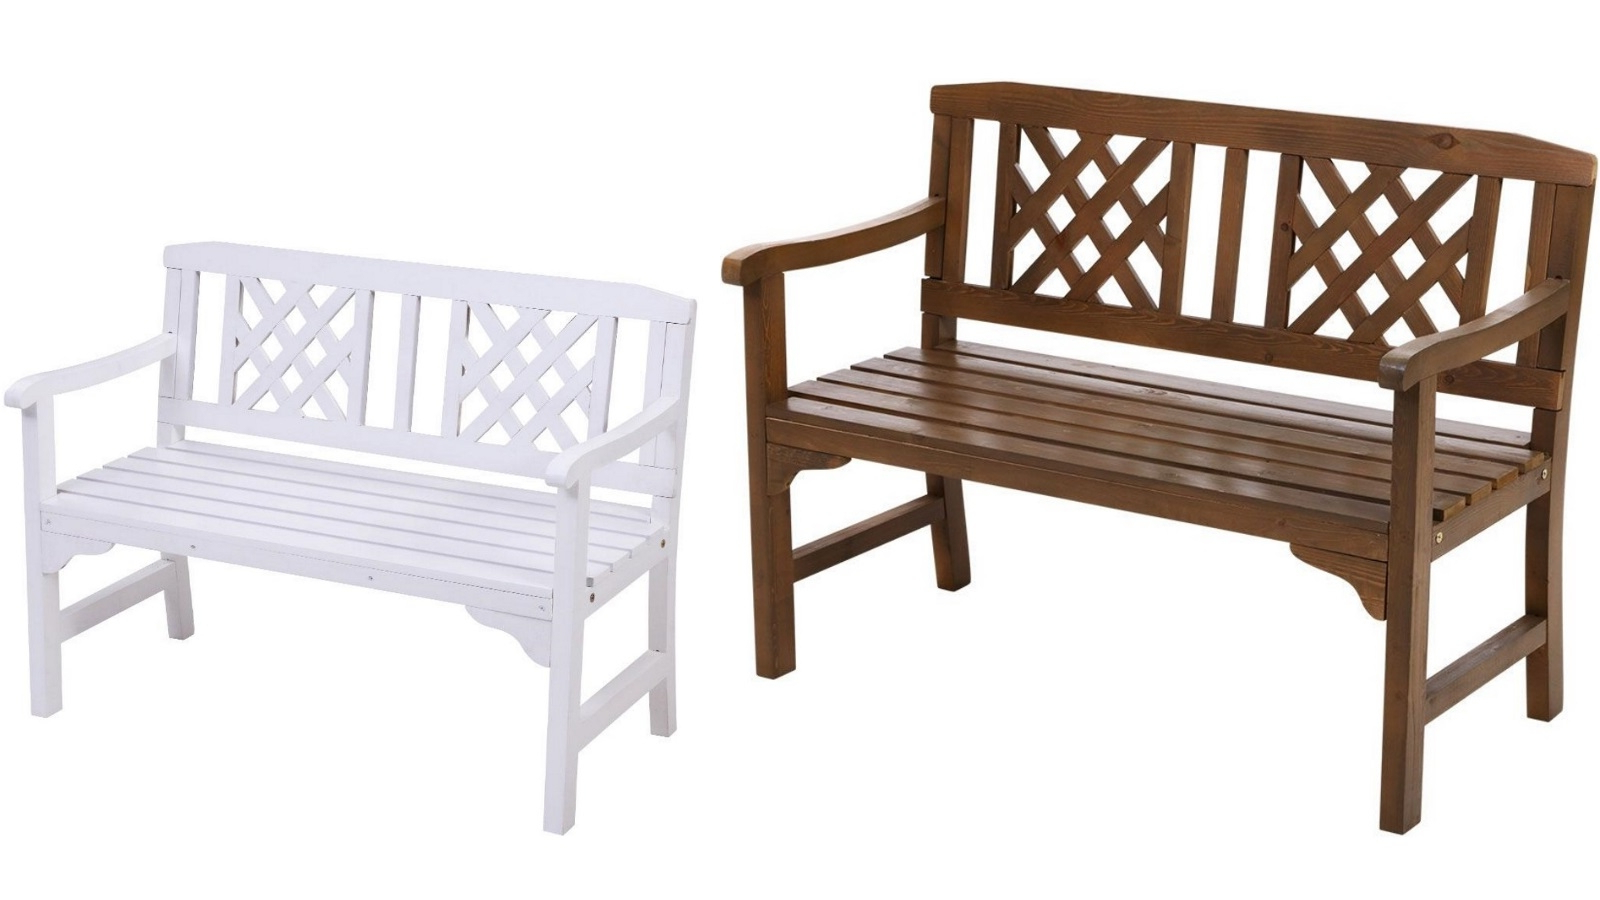 Famous Manchester Solid Wood Garden Benches Throughout Gardeon 2 Seater Wooden Garden Bench Seat (View 7 of 30)